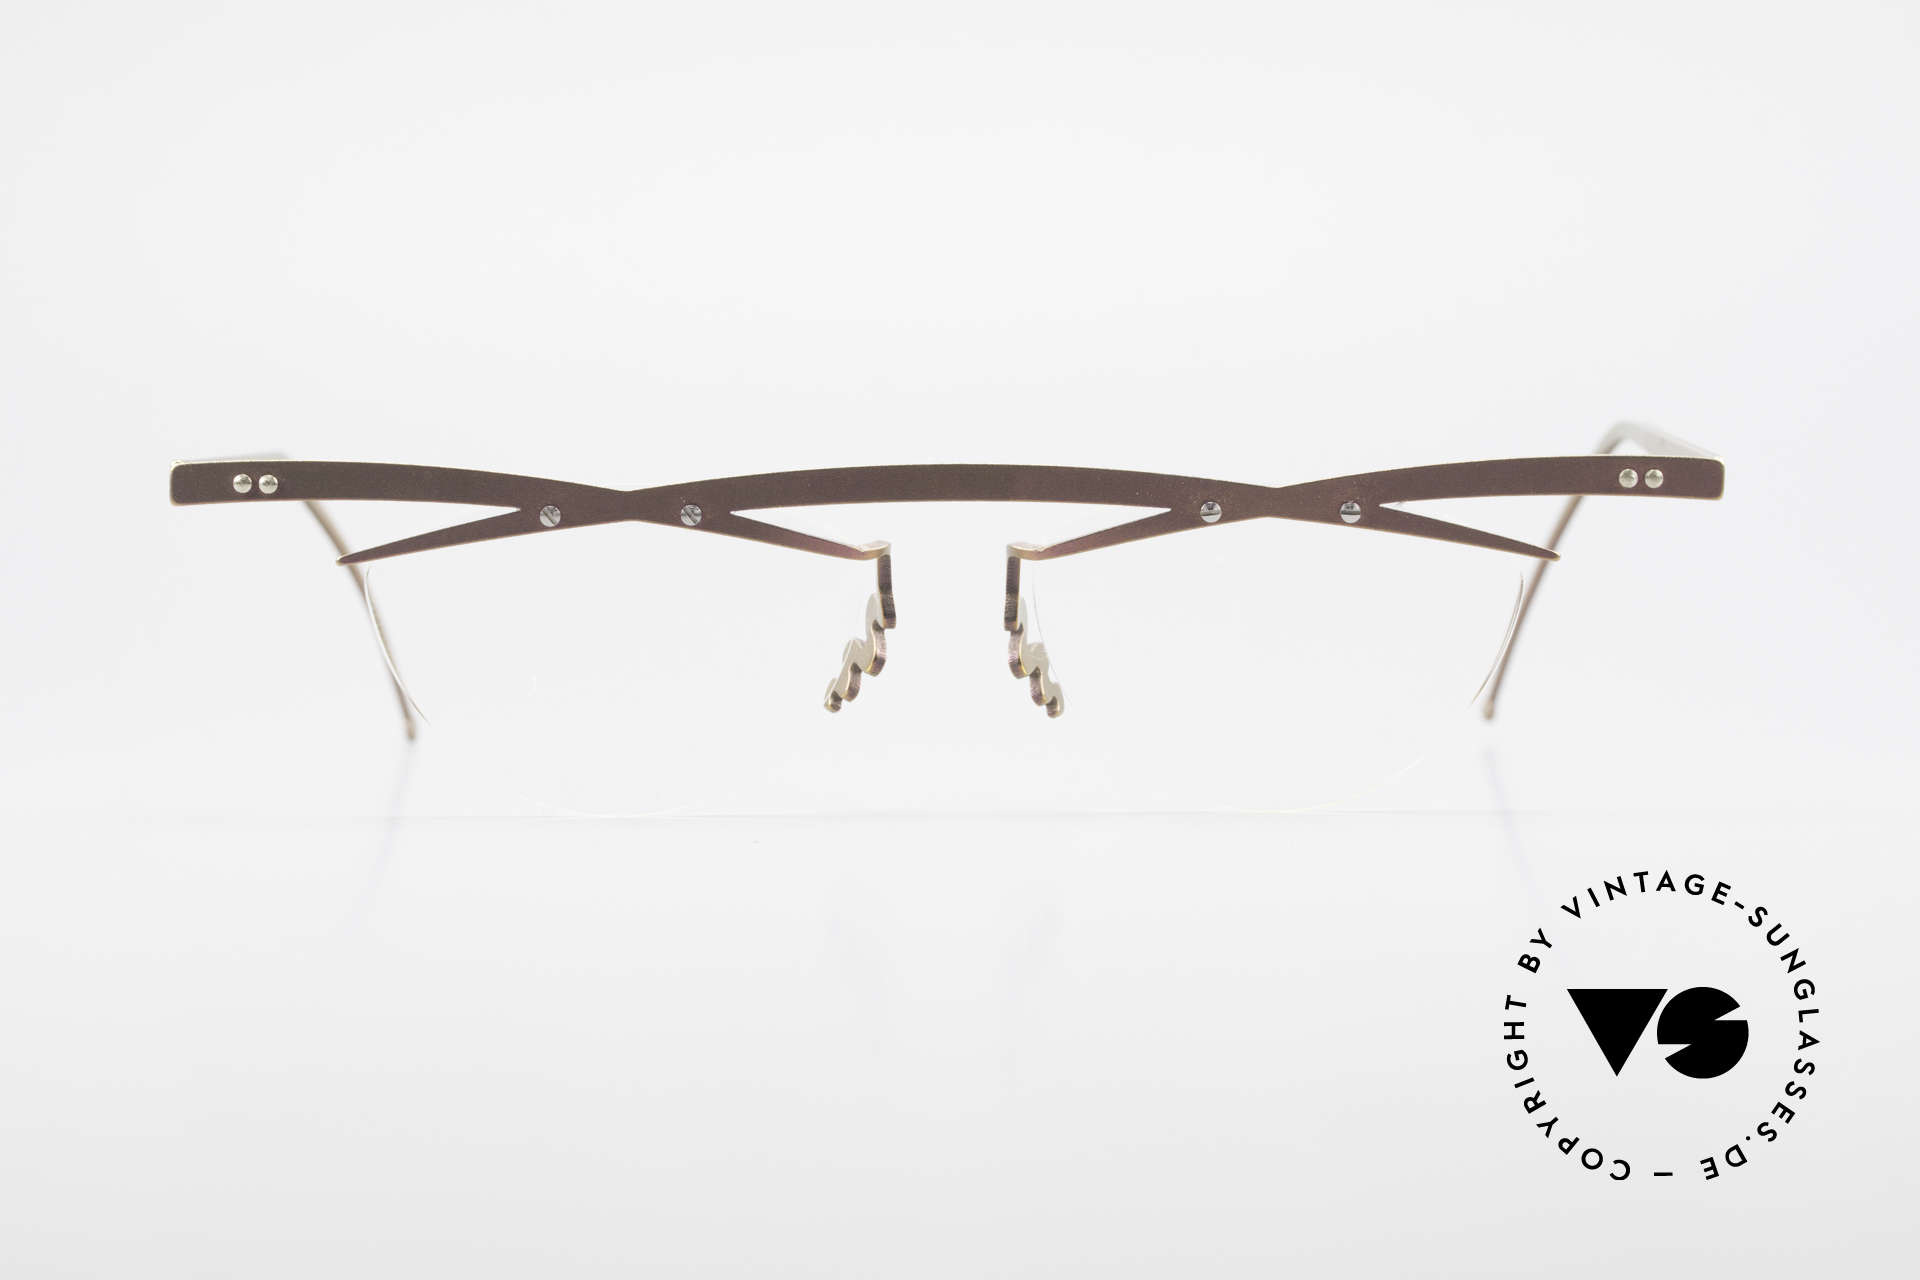 Theo Belgium Tita III 4 Crazy Vintage Glasses XL 90's, founded in 1989 as 'anti mainstream' eyewear / glasses, Made for Men and Women